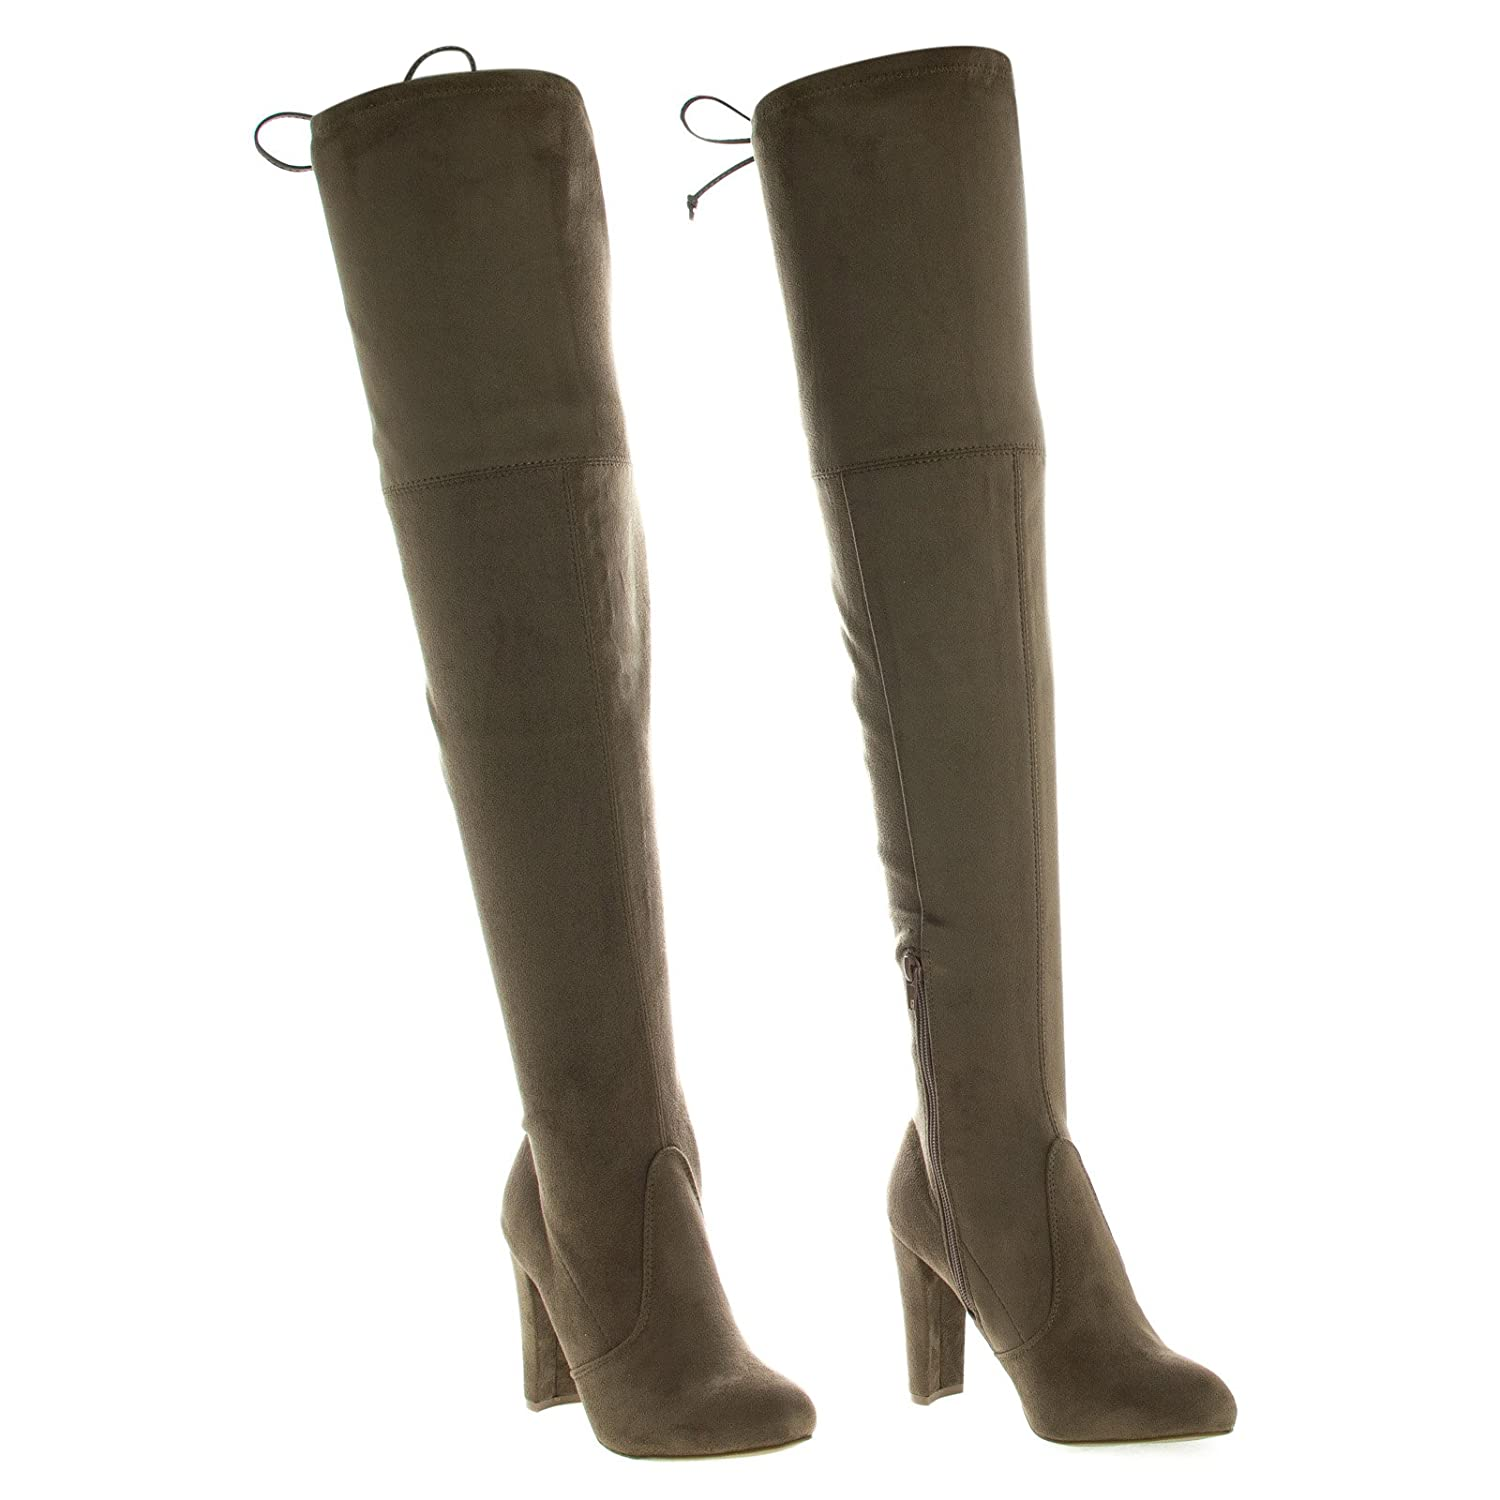 M Wild Diva Womens Floral Embroidered Thigh High Stacked Chunky Heel Boot,9 B US,Taupesuede